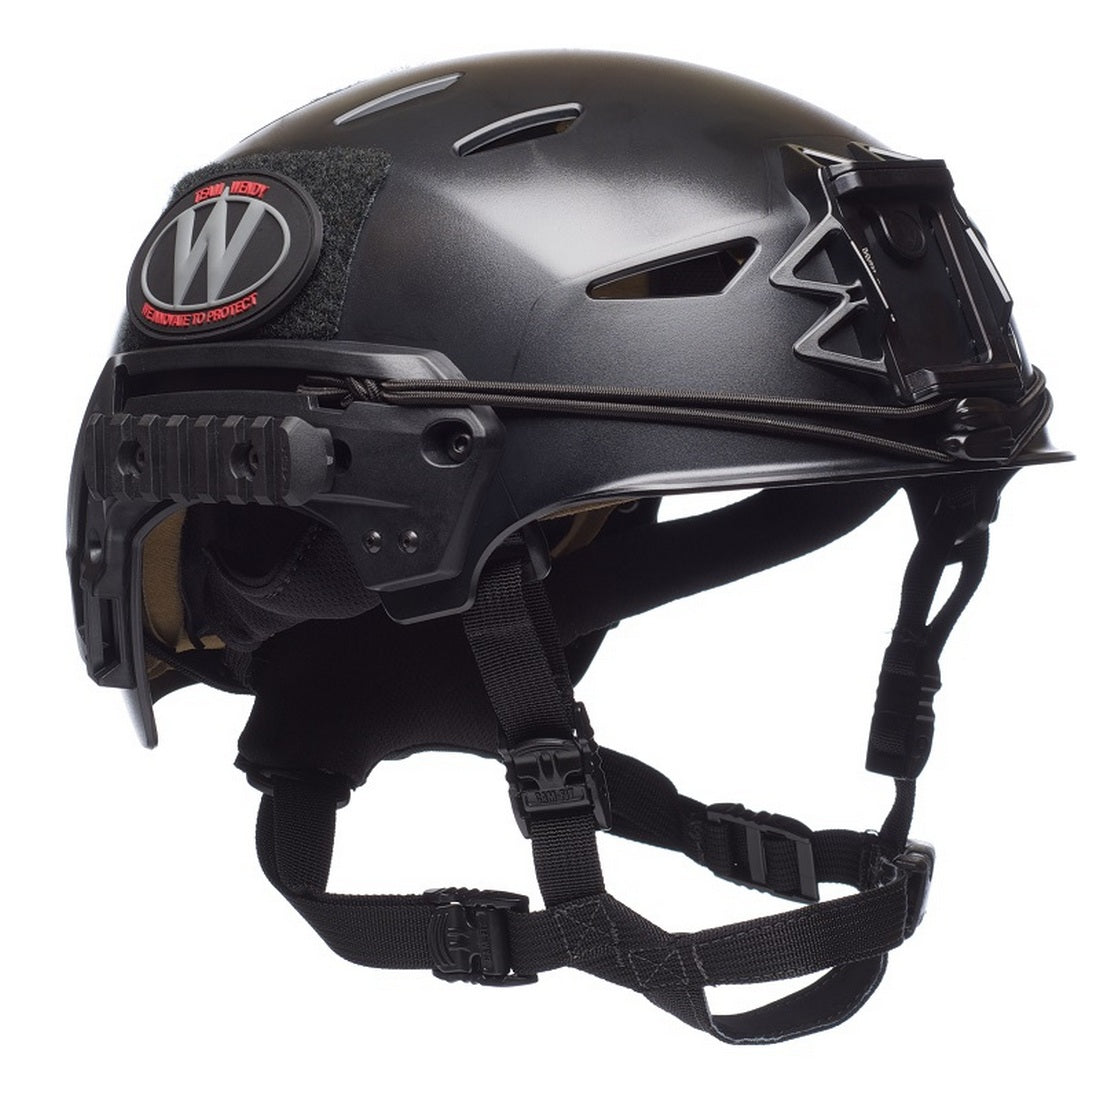 Team Wendy 72-31S EXFIL LTP Helmet - M/L - Coyote Brown (Helmets)